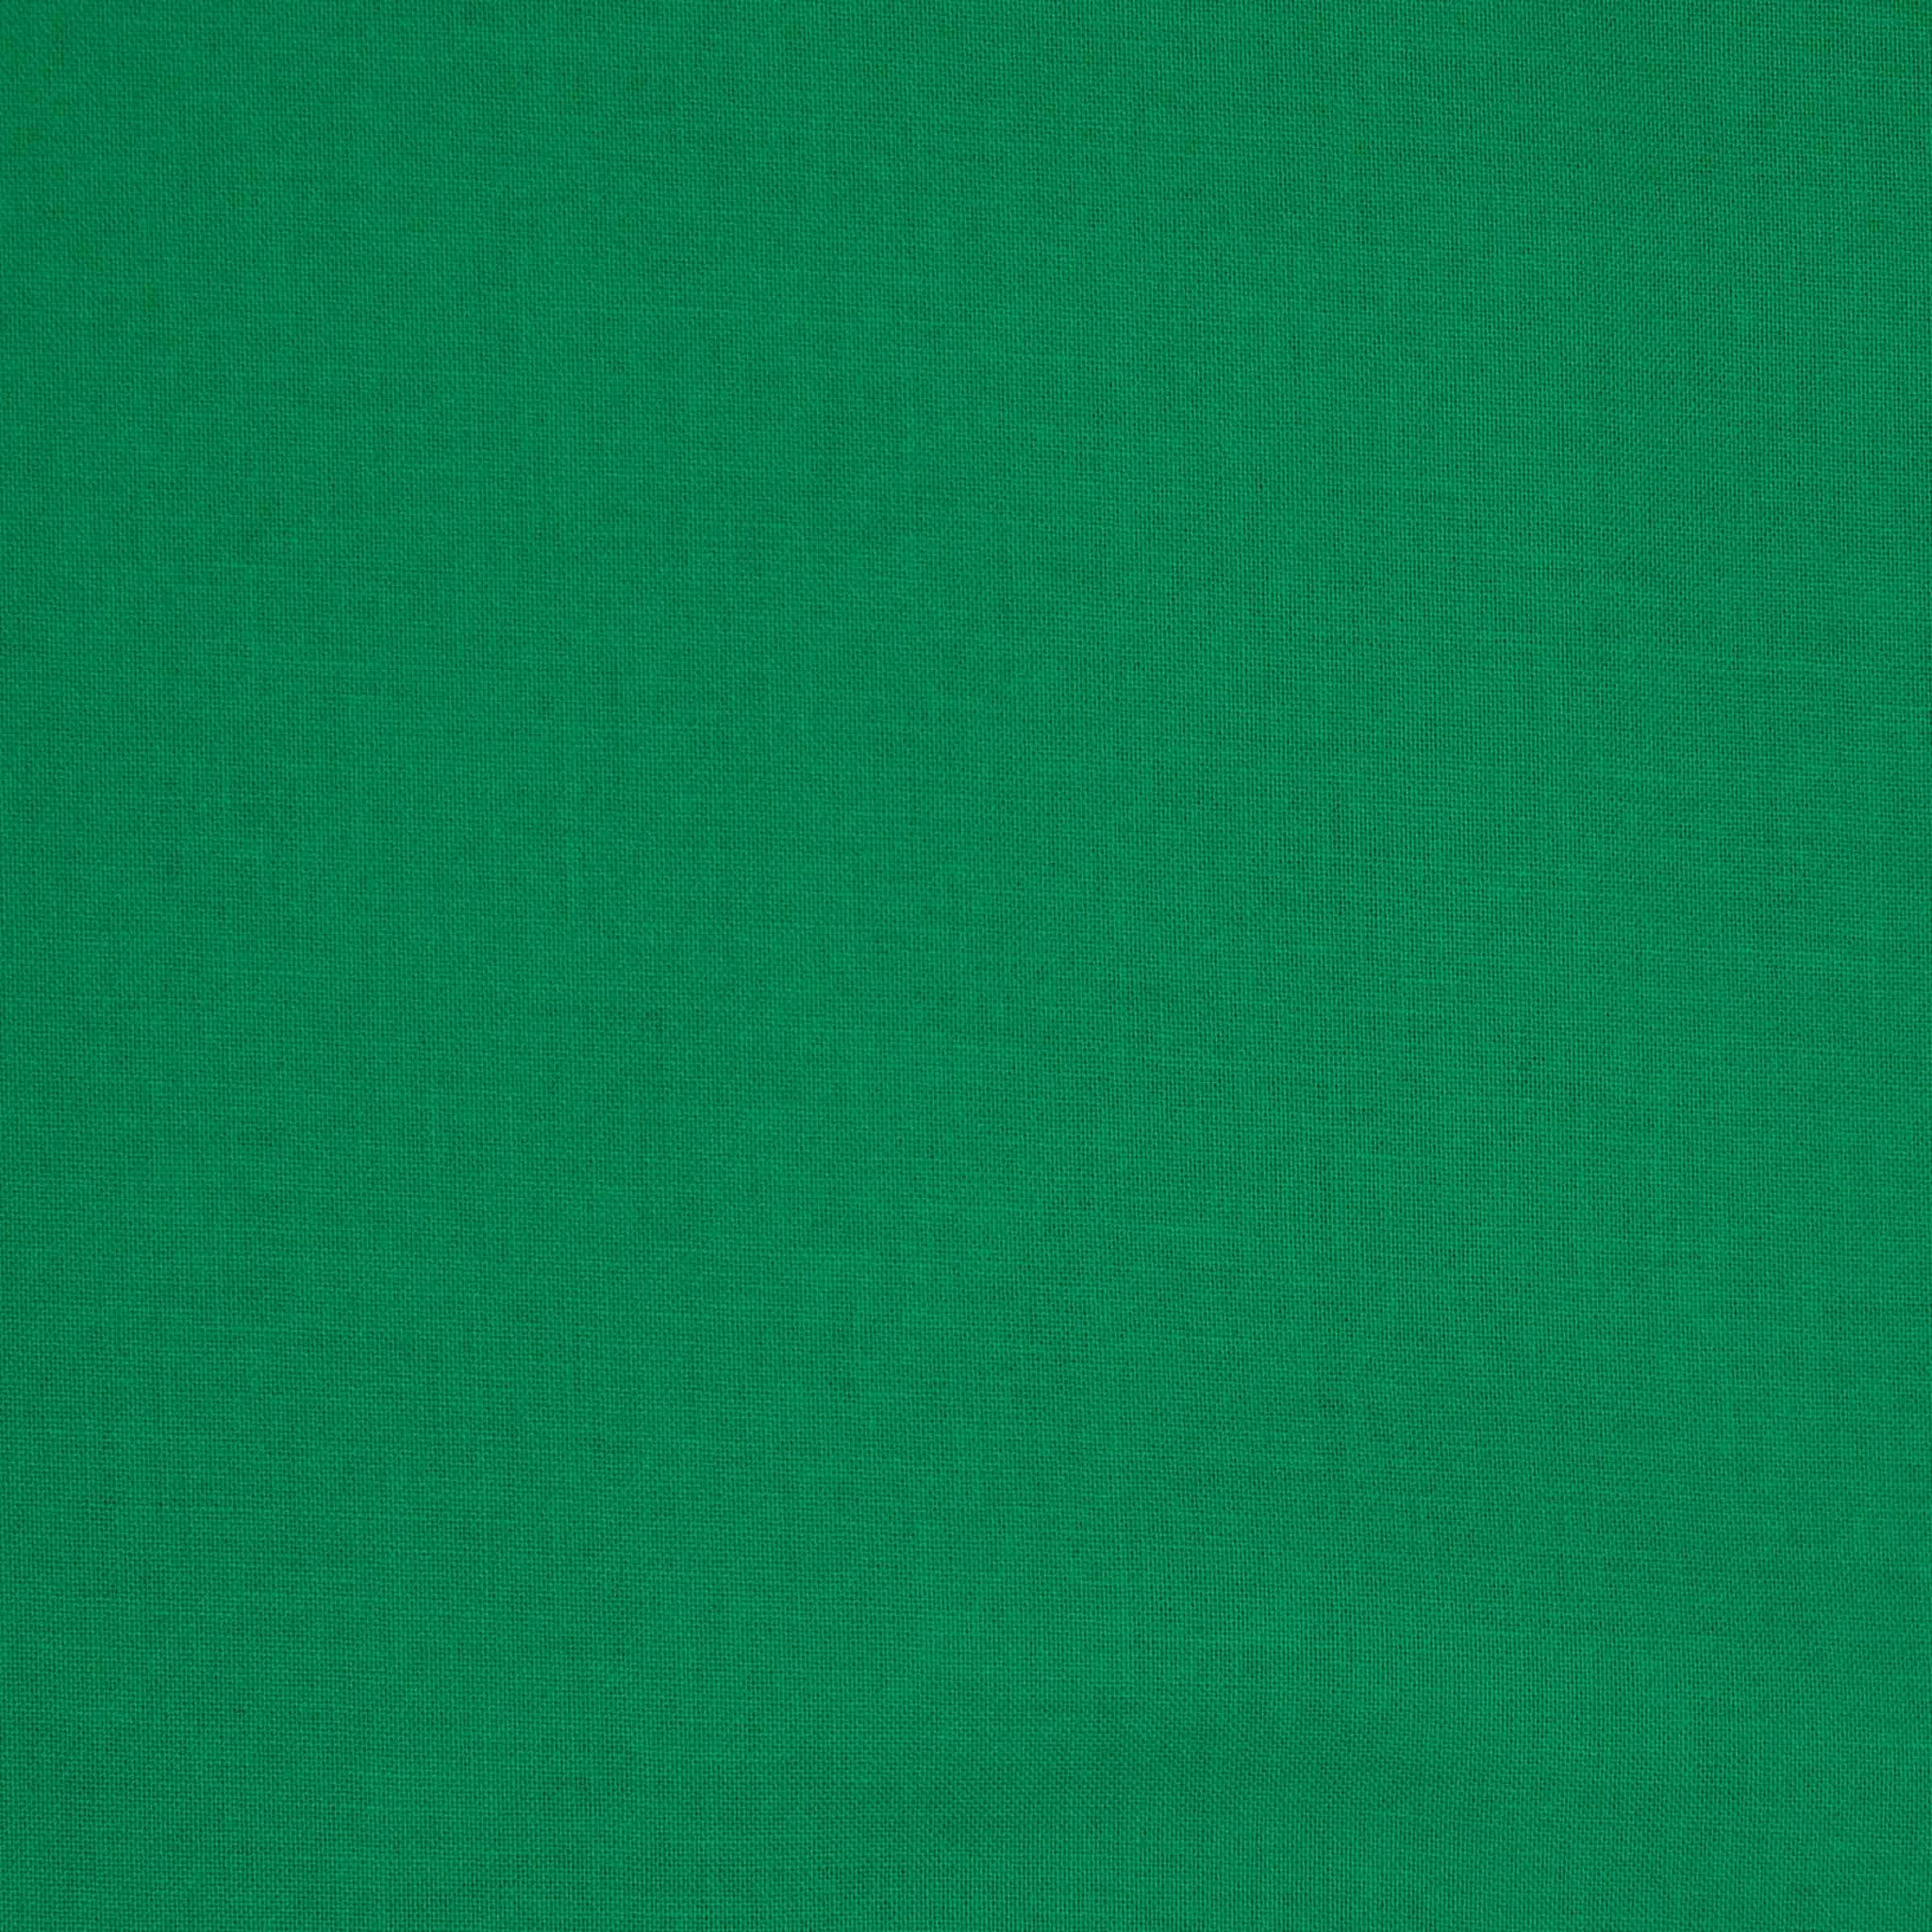 Makower Spectrum 2000 G46 Emerald Green